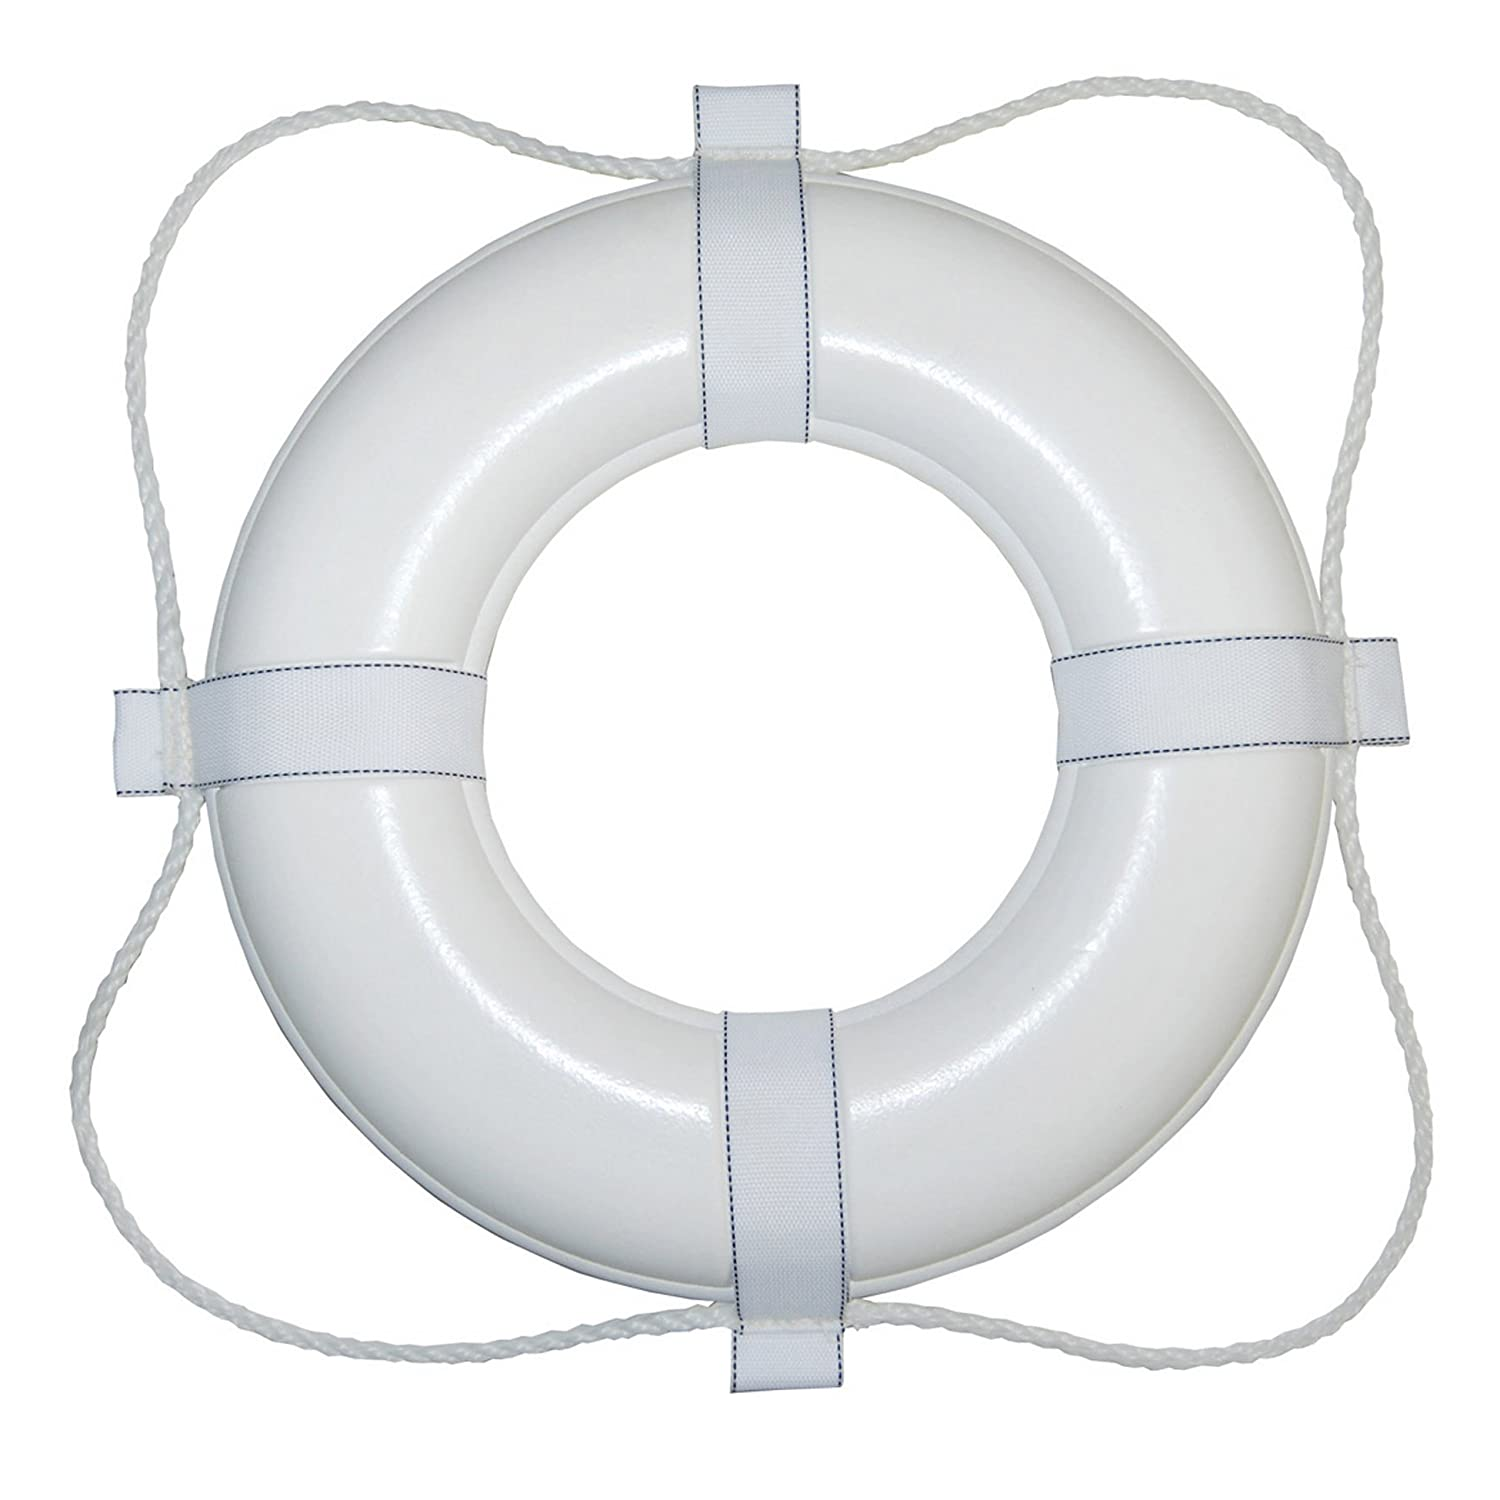 safety drifting airbags rings drop mother buoy water dual float storage flotation bags baby item shipping seat buoys child circle swim inflatable double adult ring swimming